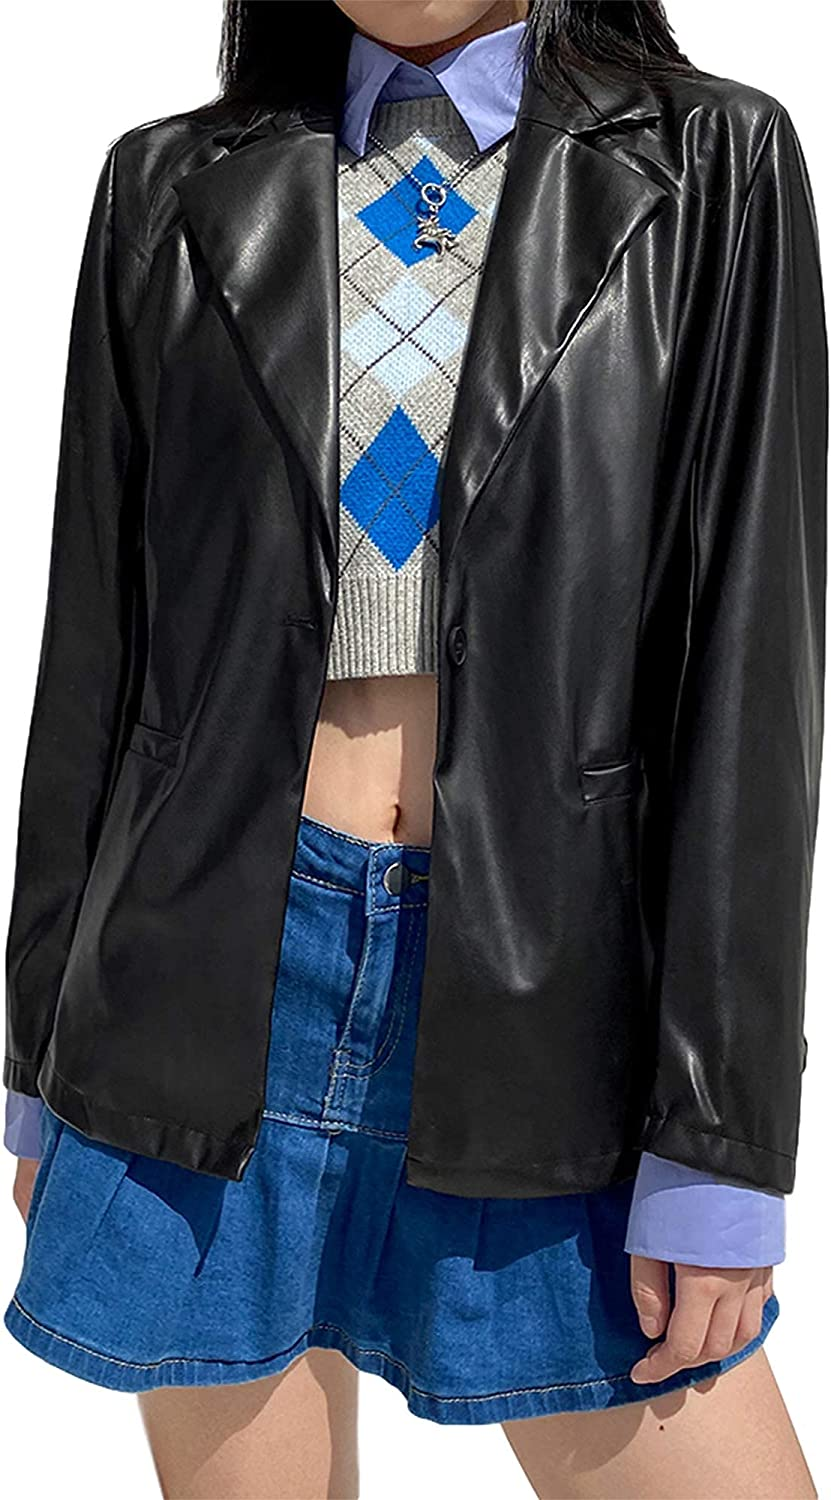 Women PU Leather Blazer Casual Faux Leather Coat Open Front Cardigan Office Jacket with Pocket